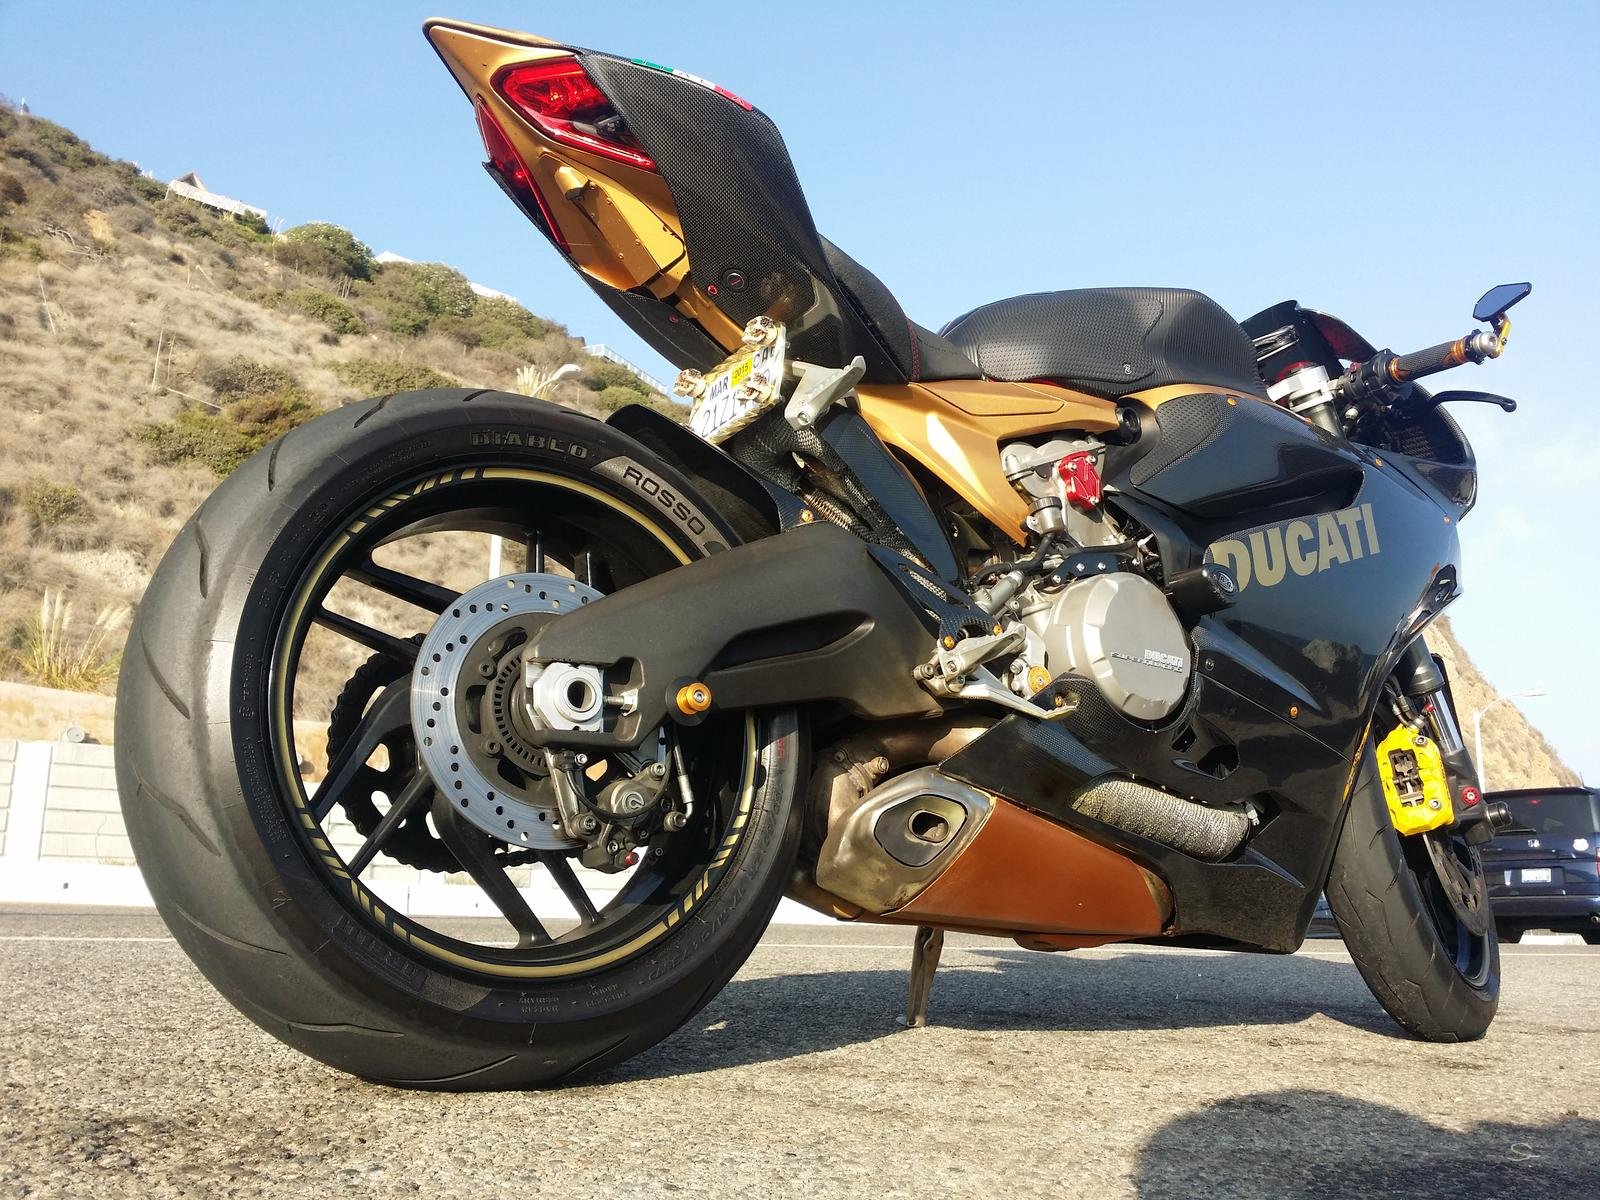 2014 ducati panigale 899 carbon 16500 los angeles ducati 899 panigale forum. Black Bedroom Furniture Sets. Home Design Ideas